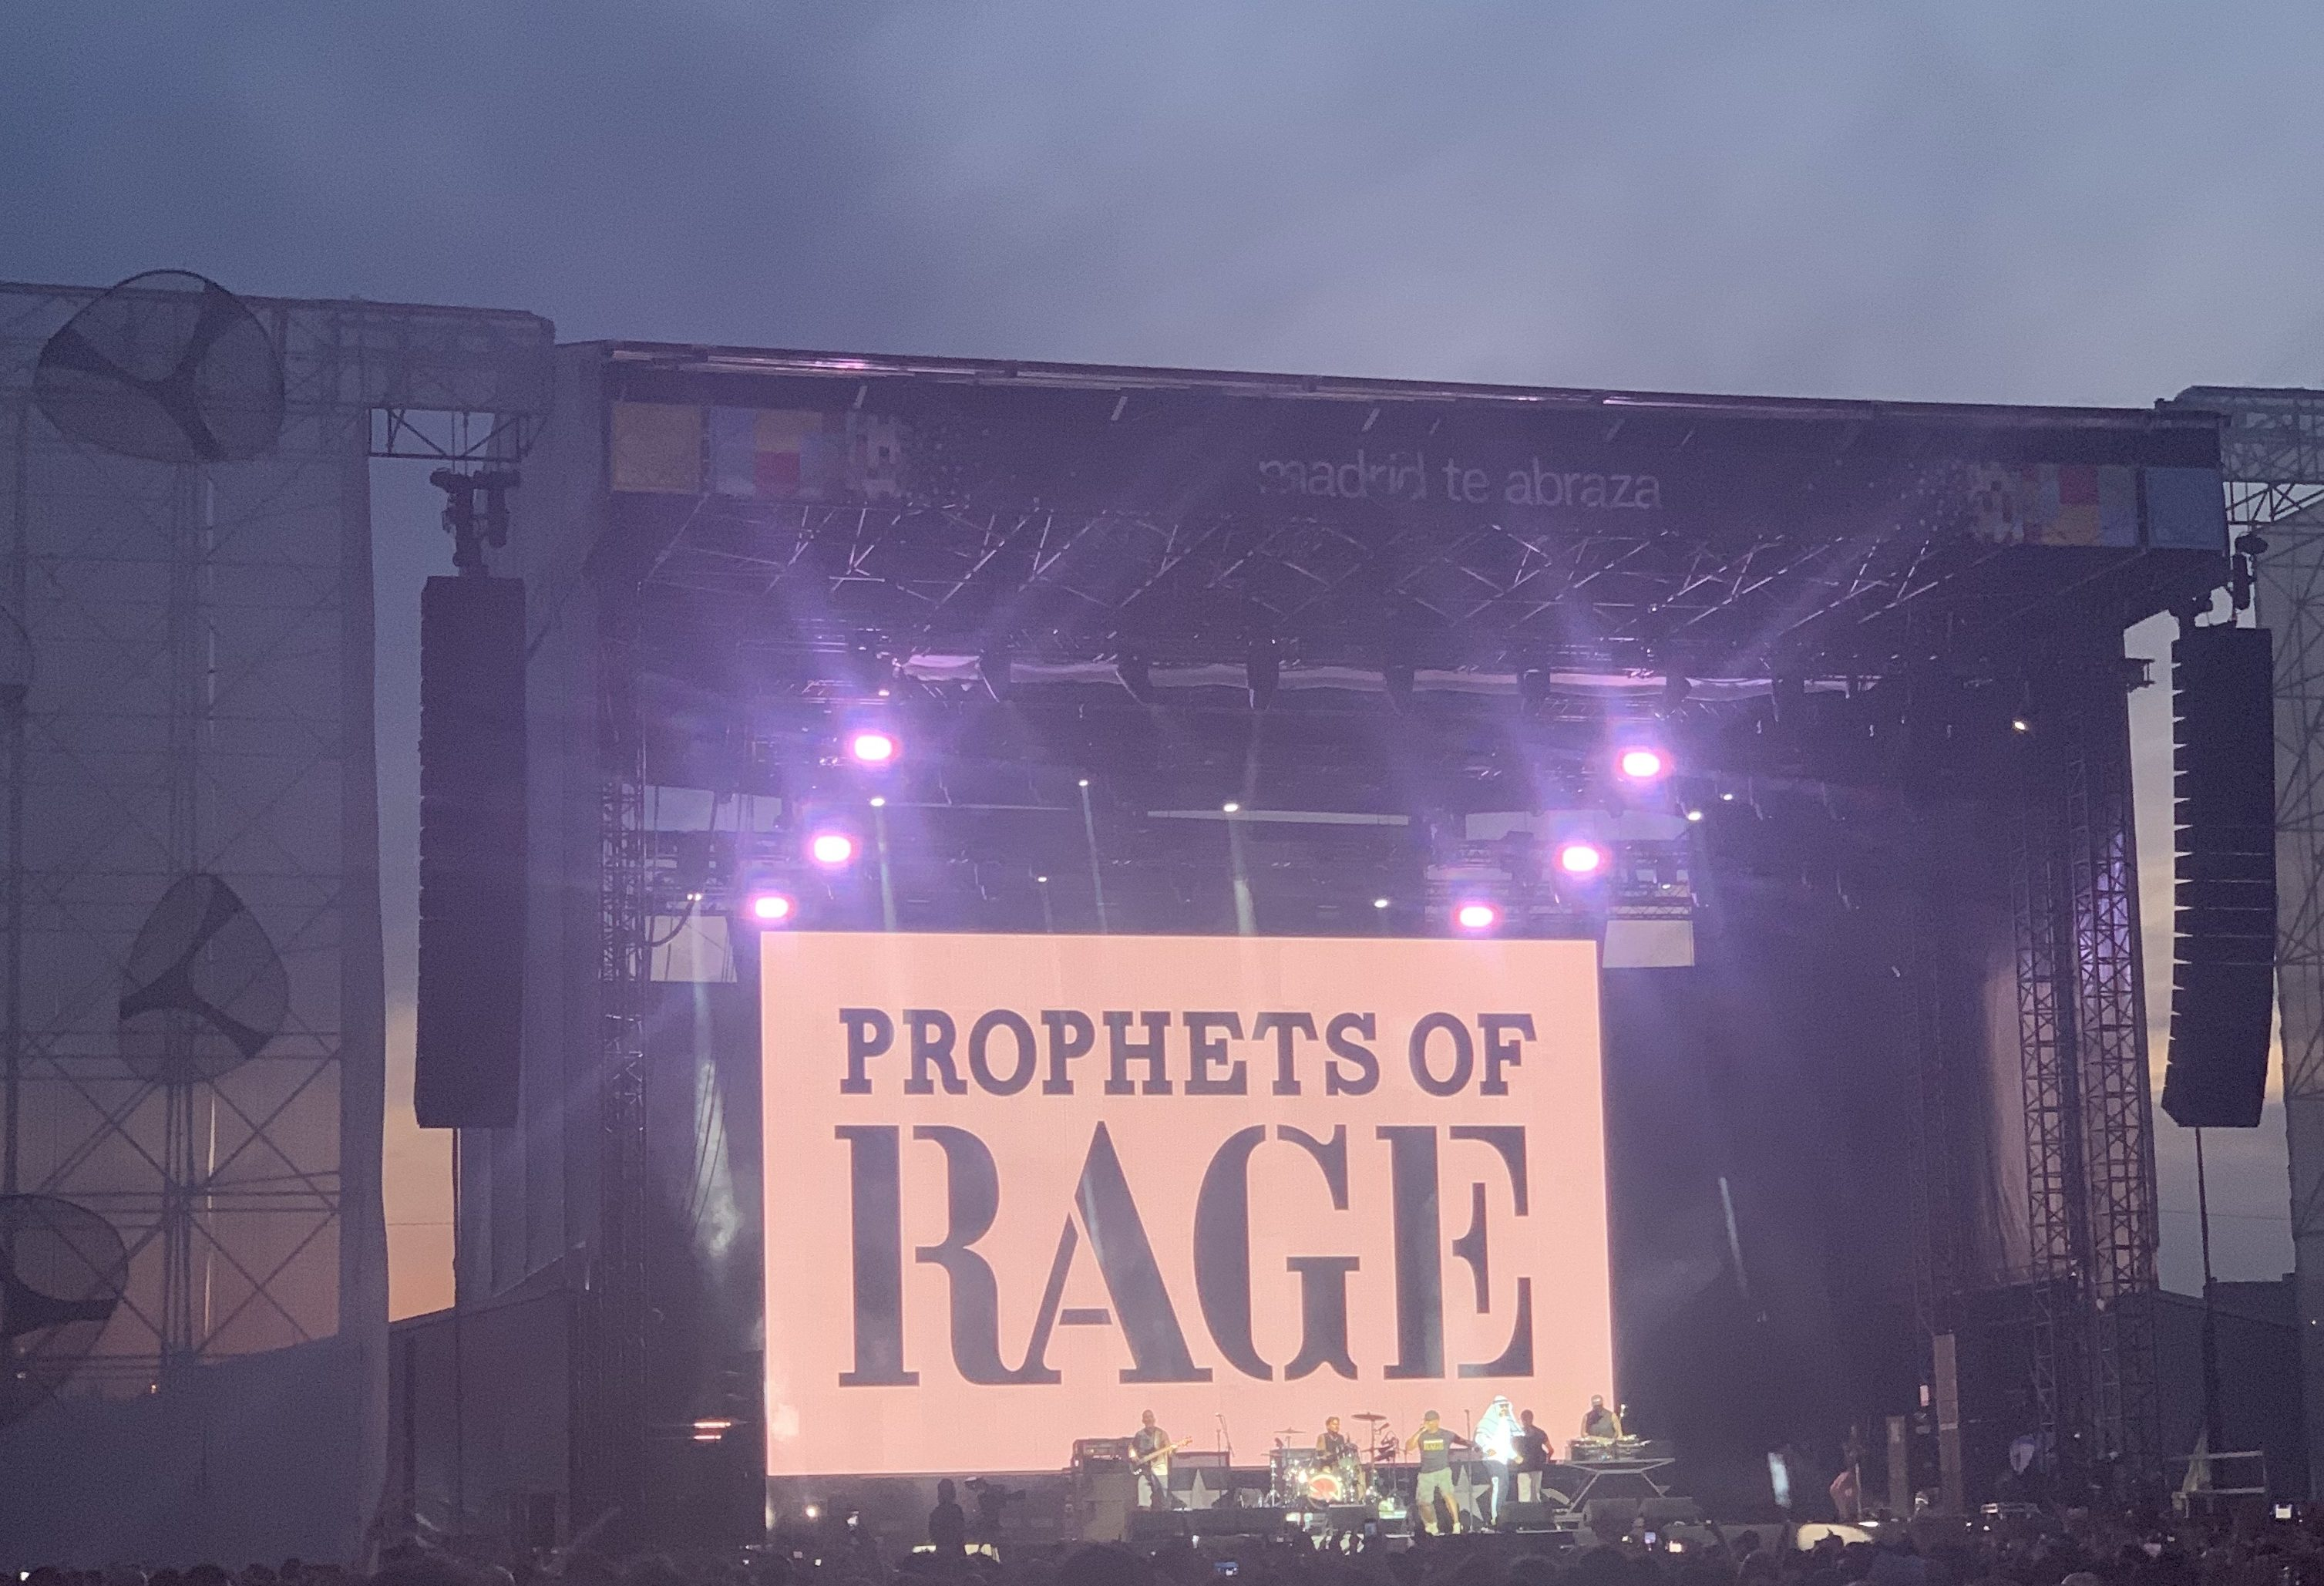 Prophets of Rage on the Madrid Te Abraza Stage.